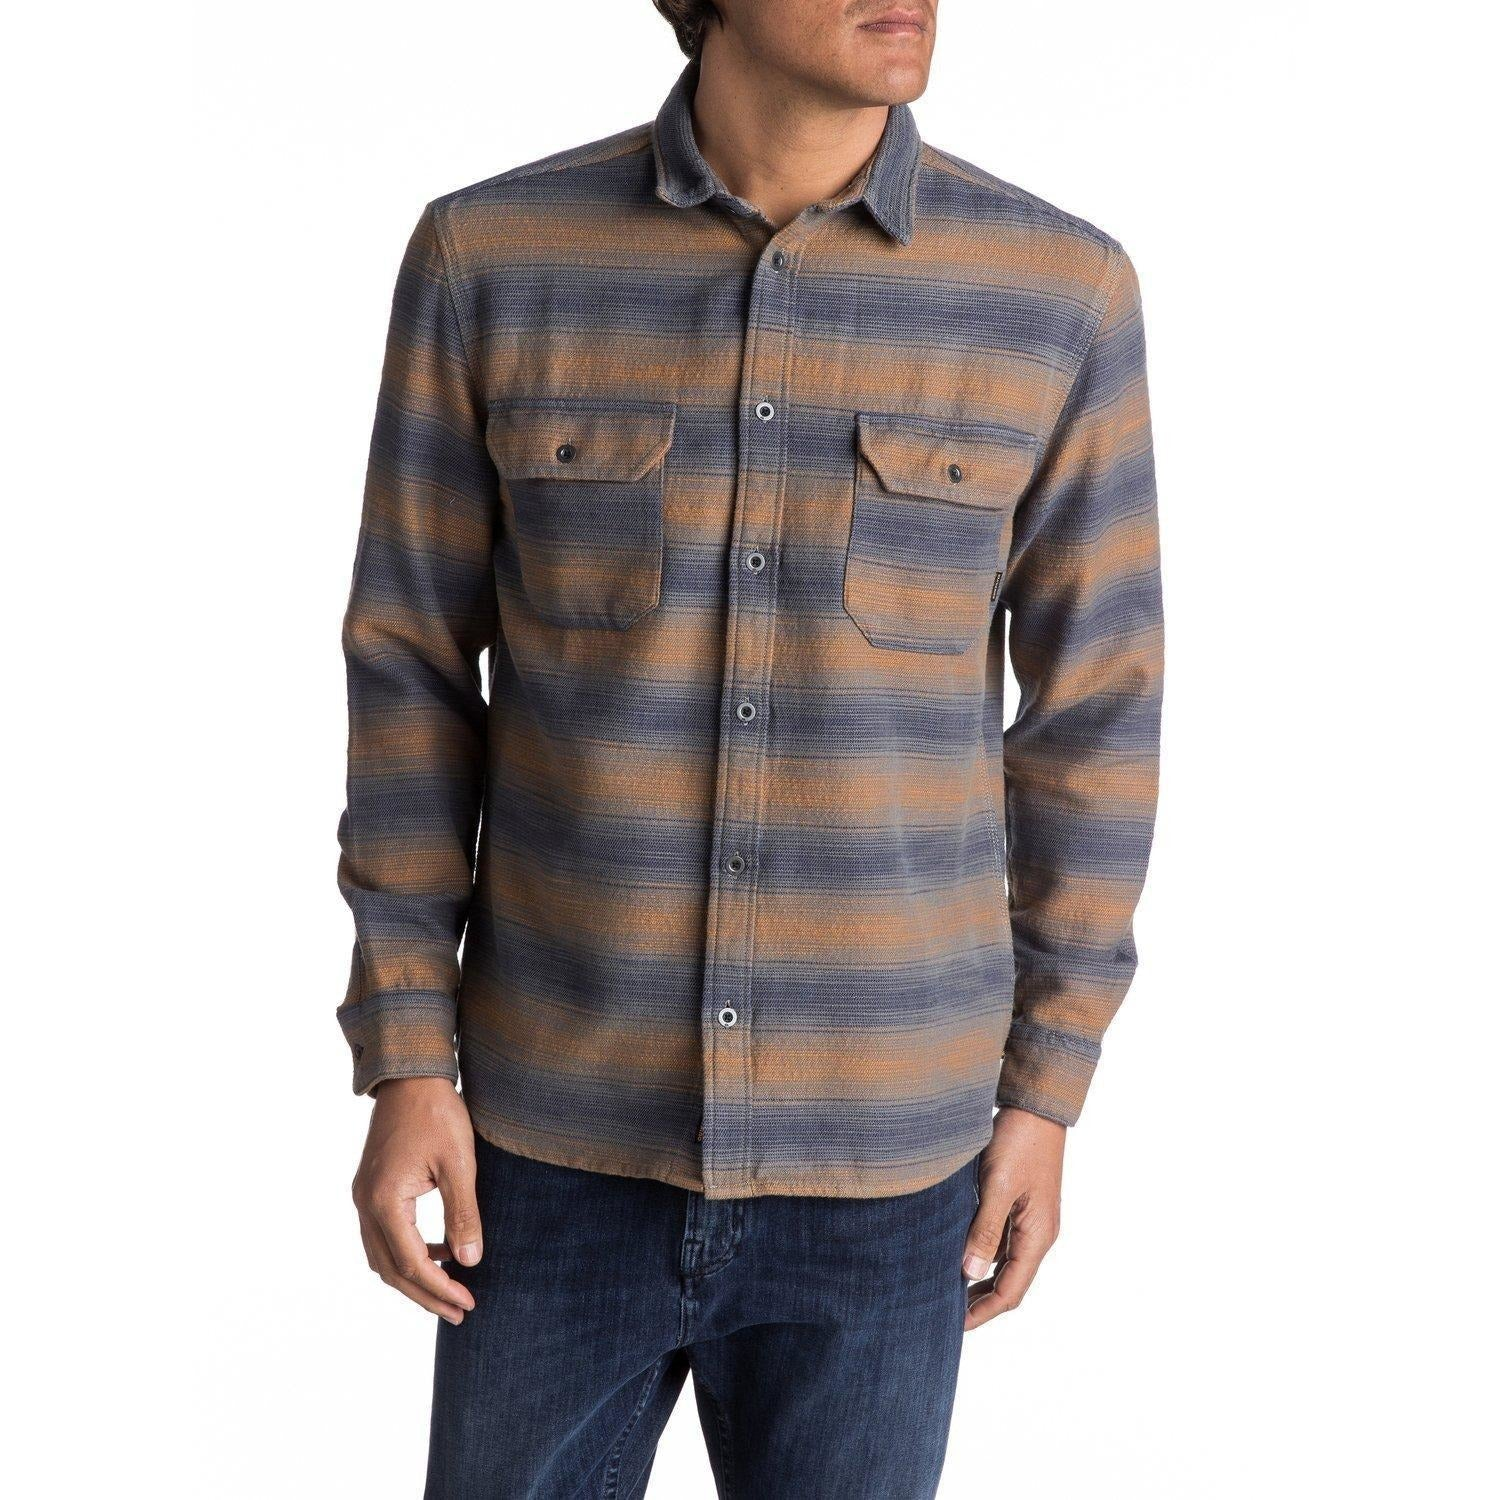 Quiksilver Dusky Town Flannel Long Sleeve Over Shirt - 88 Gear